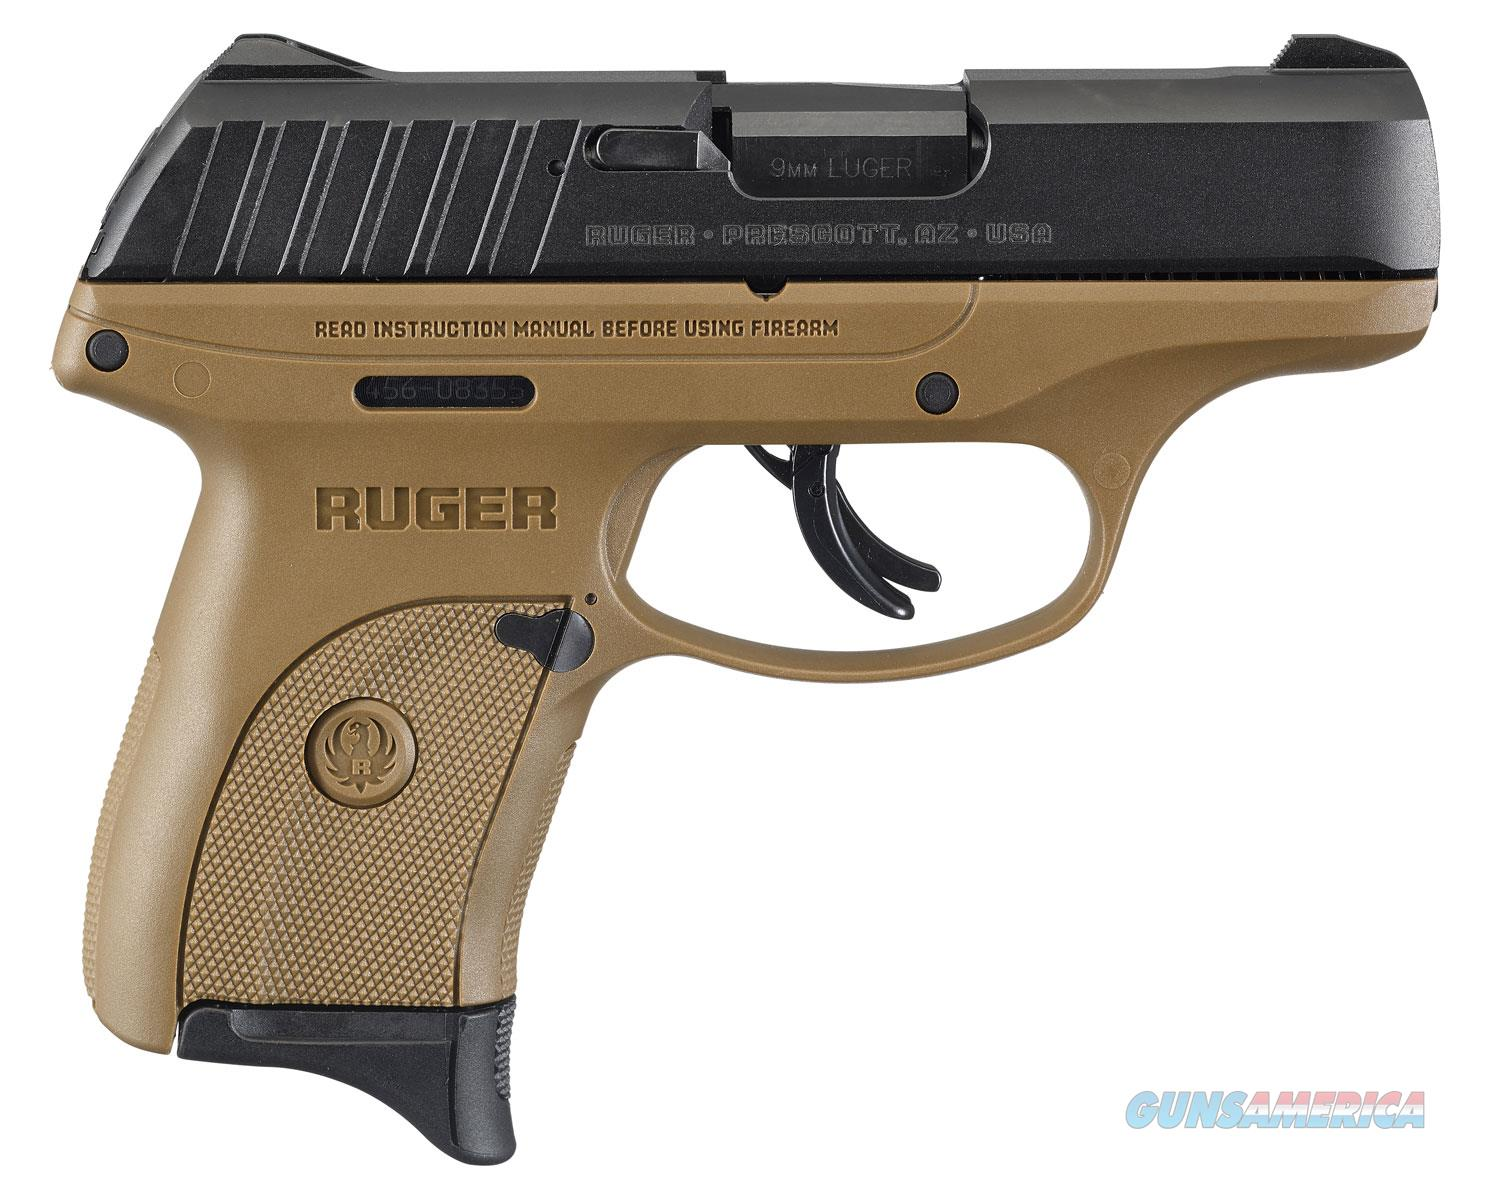 "Ruger EC9s FDE 9mm 3297 7+Ruger EC9s FDE 9mm 3297 7+1 Thumb Safety ""NO CREDIT CARD FEE"" *SUPER DEAL*1 Thumb Safety ""NO CREDIT CARD FEE"" *SUPER DEAL*  Guns > Pistols > Ruger Semi-Auto Pistols > EC9"